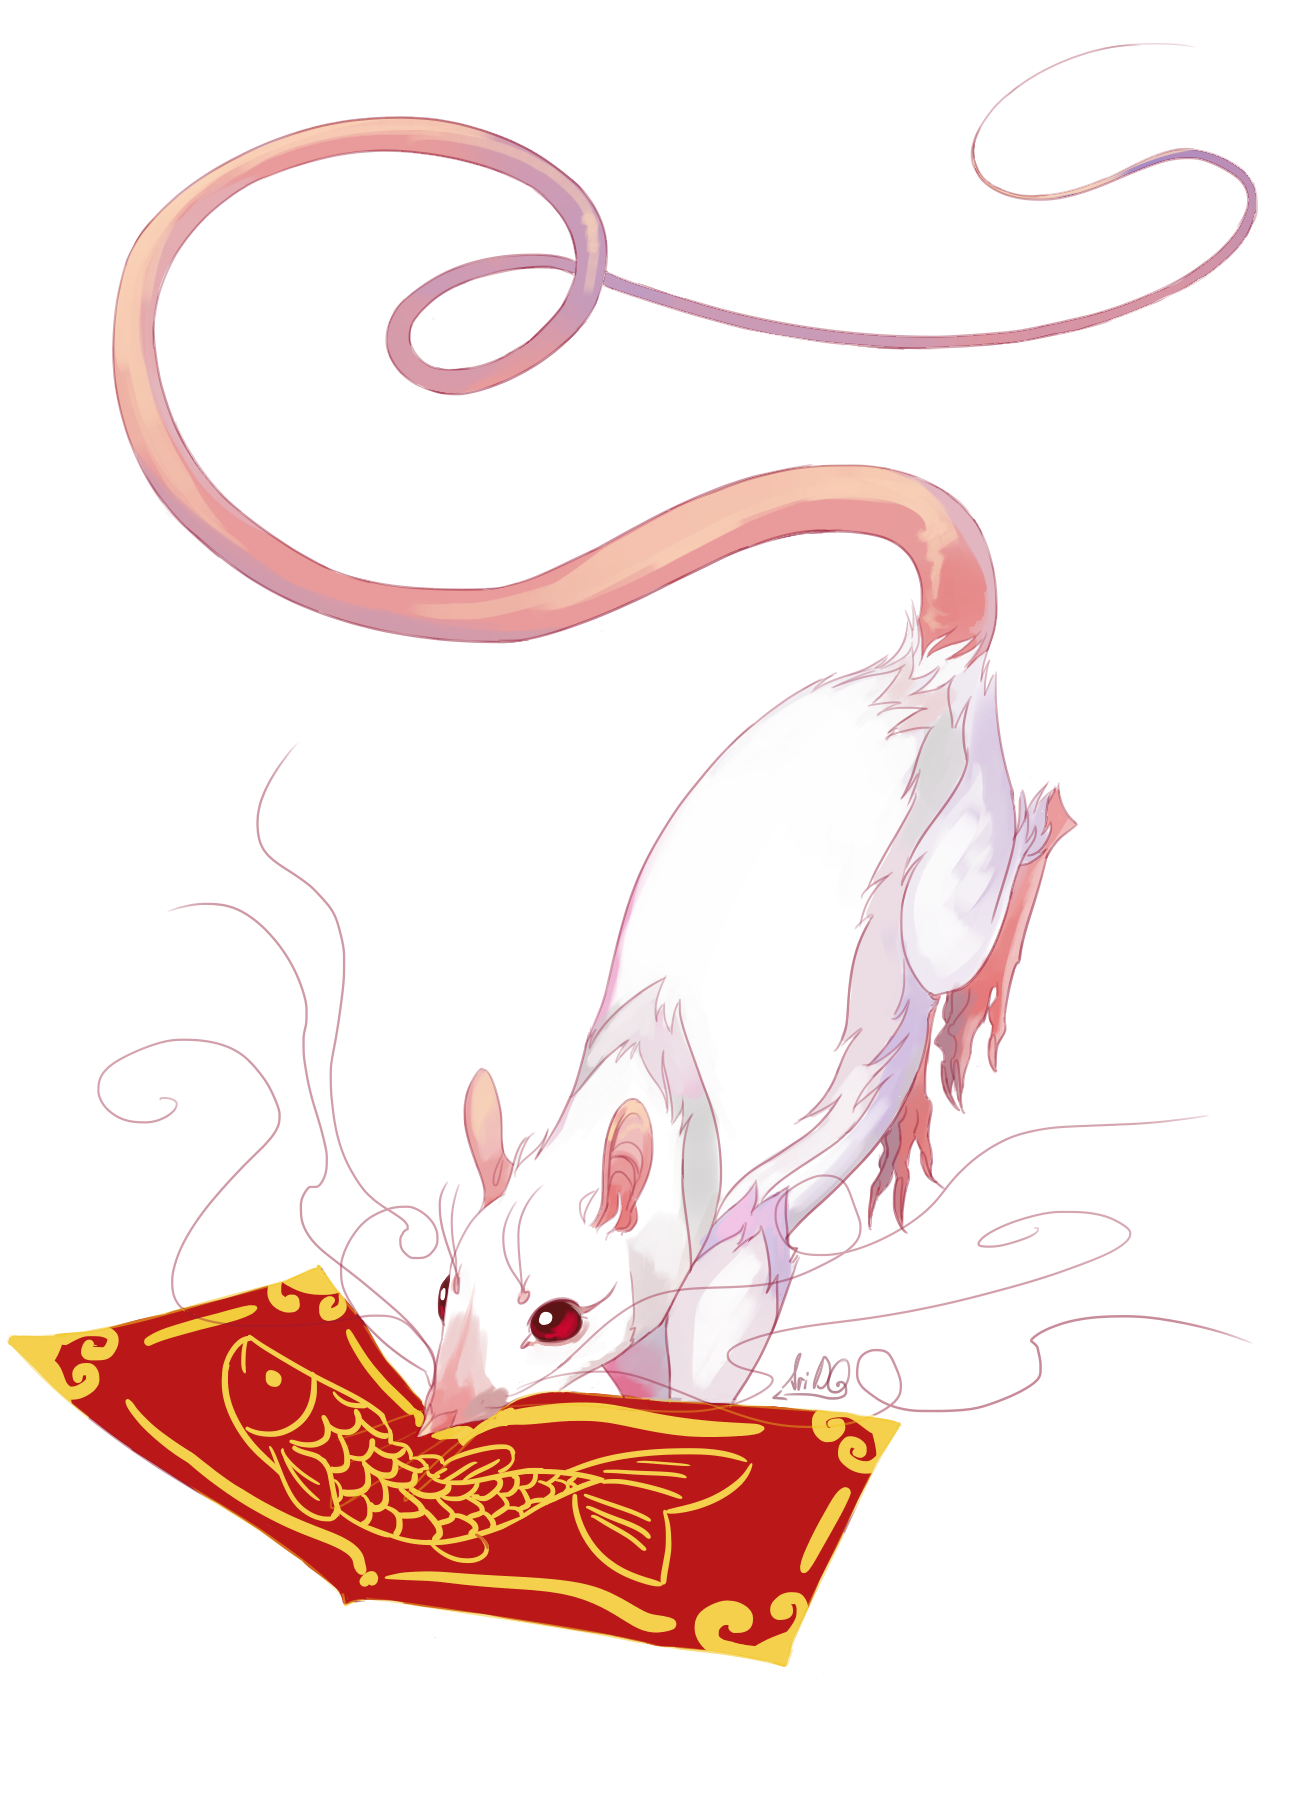 I did a simple but here it is, year of the rat!